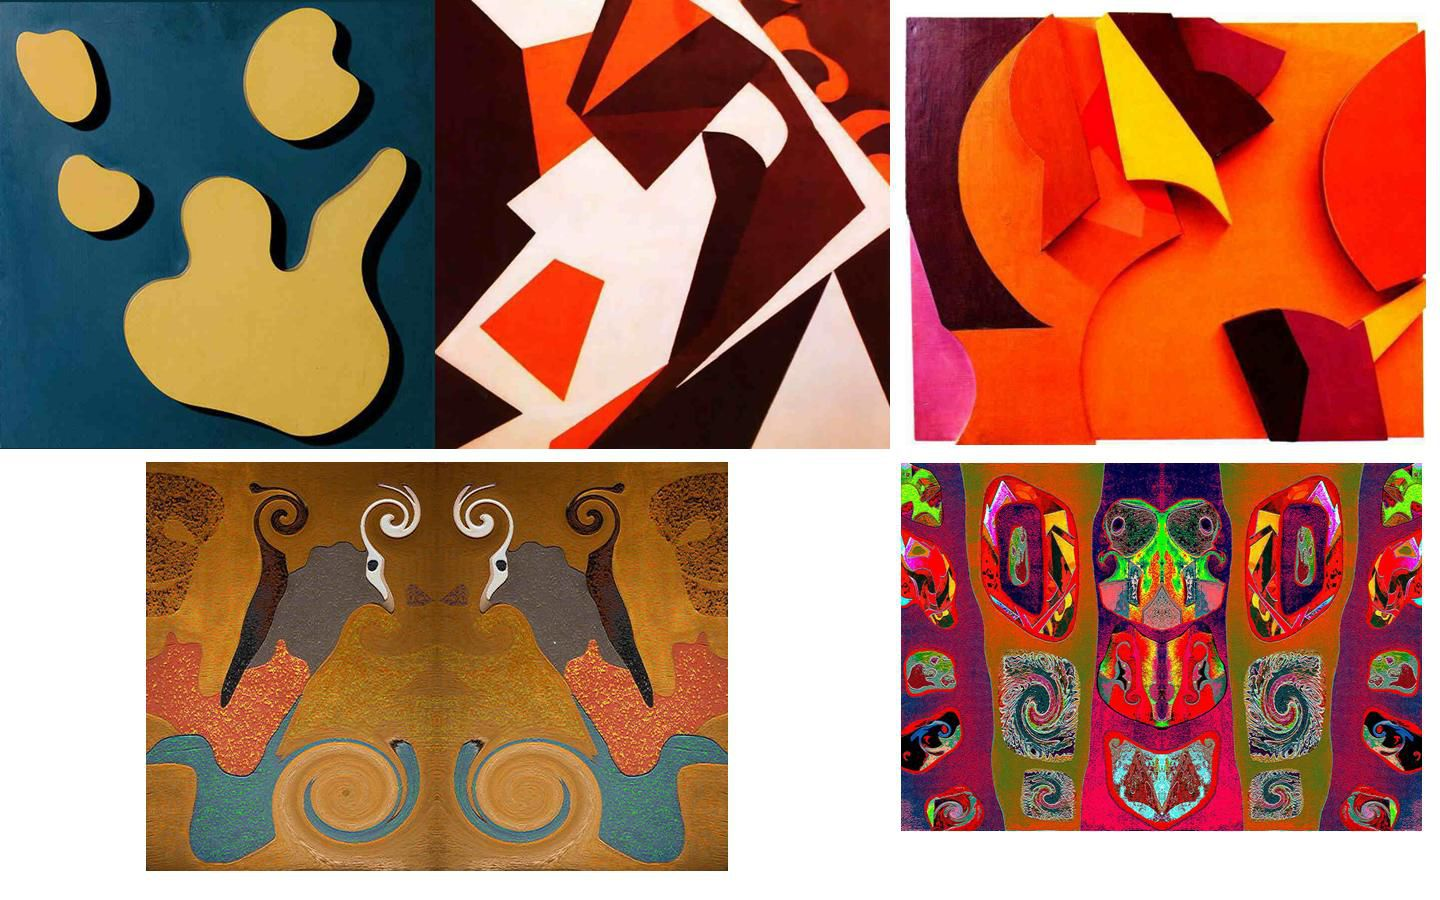 Jean-Arp-choix-d-oeuvres-02.jpg